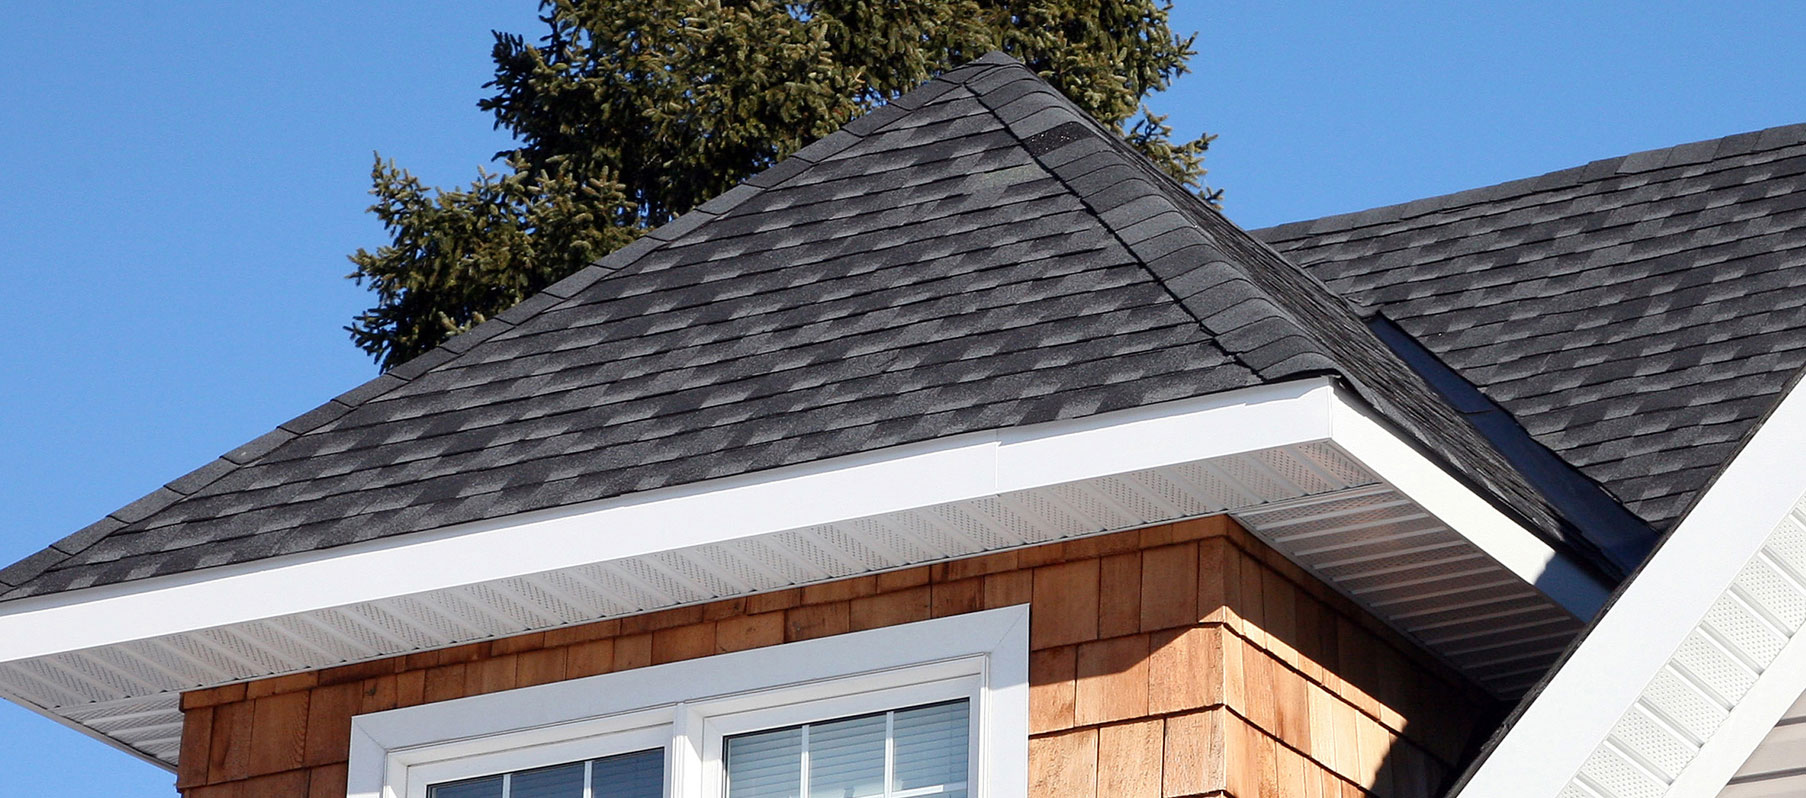 4 Ways to Protect Your Roof And Siding During Hail Season